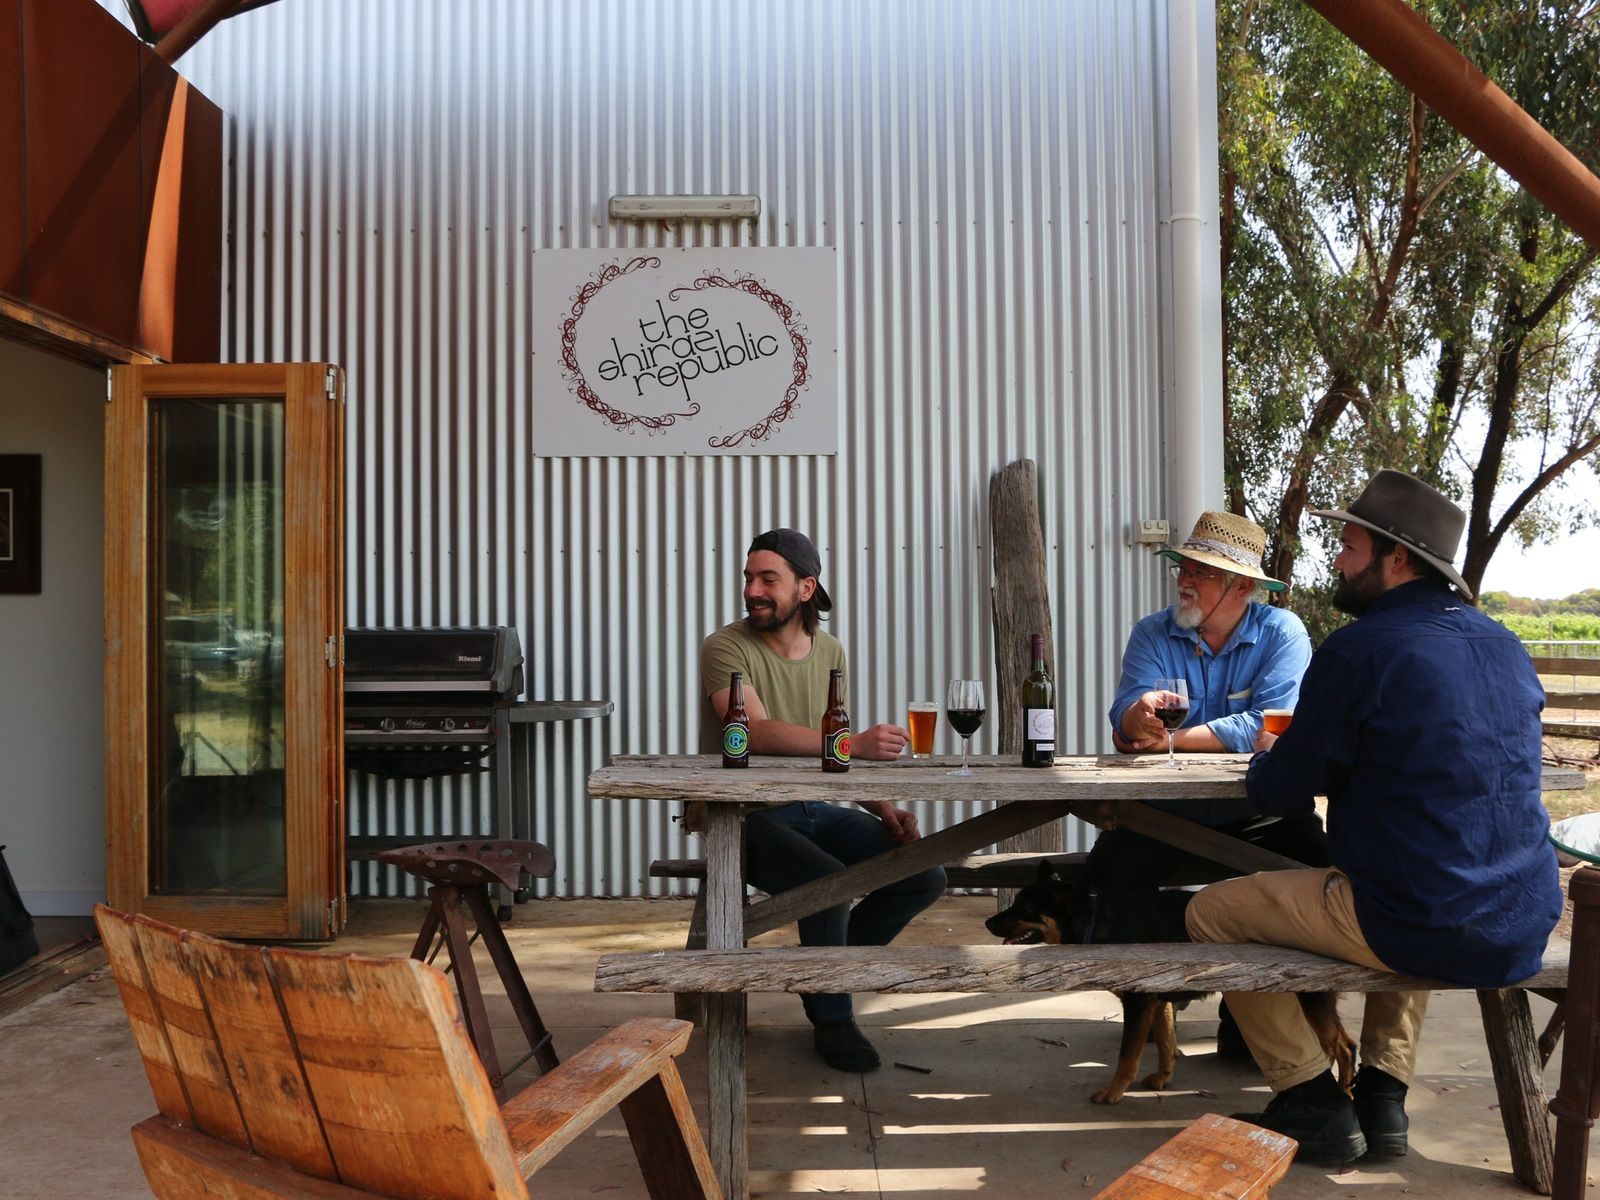 Drop in for a beer or a wine and relax at our cellar door overlooking 25-acres of vines.